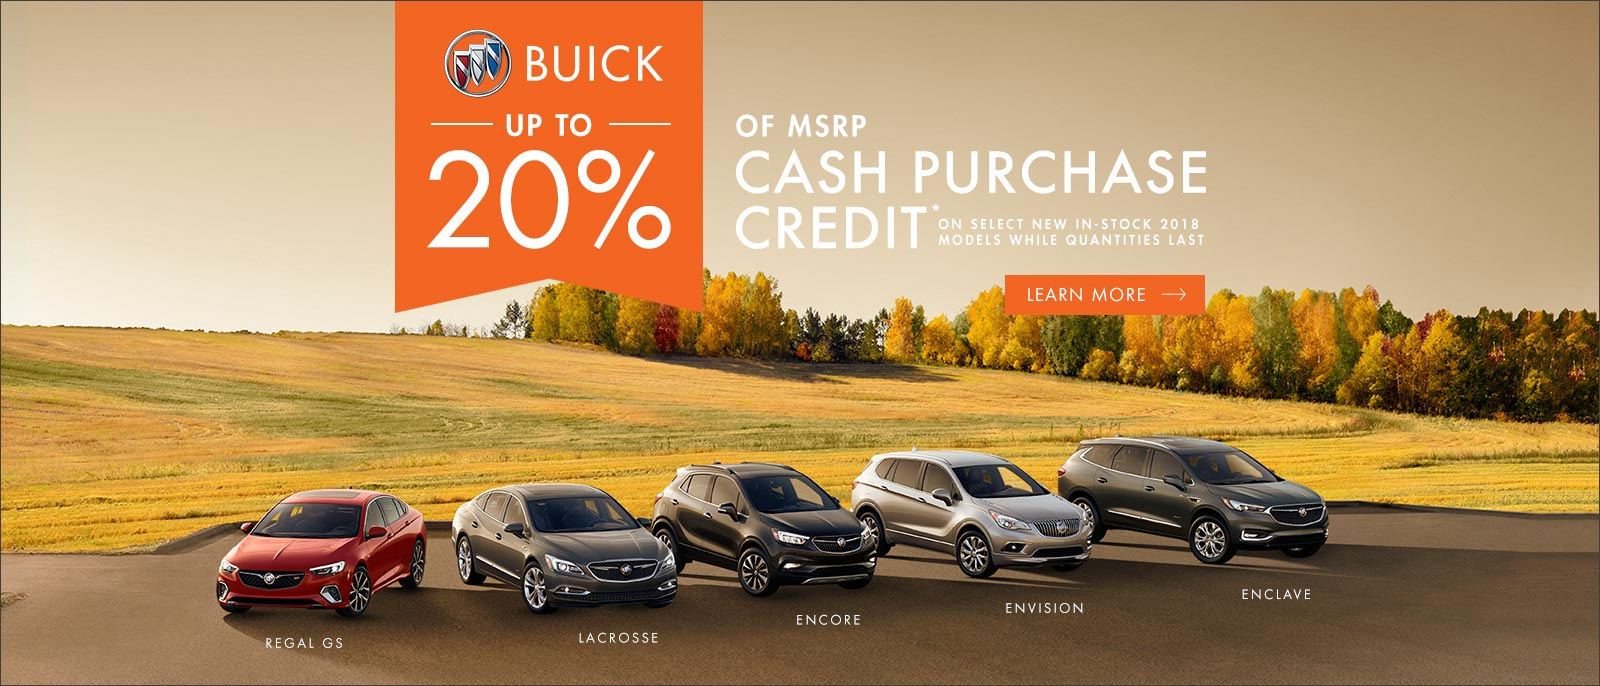 Buick Encore Enclave Envision Up to 20% of MSRP VanDusen Ajax Pickering whitby Oshawa Durham Region